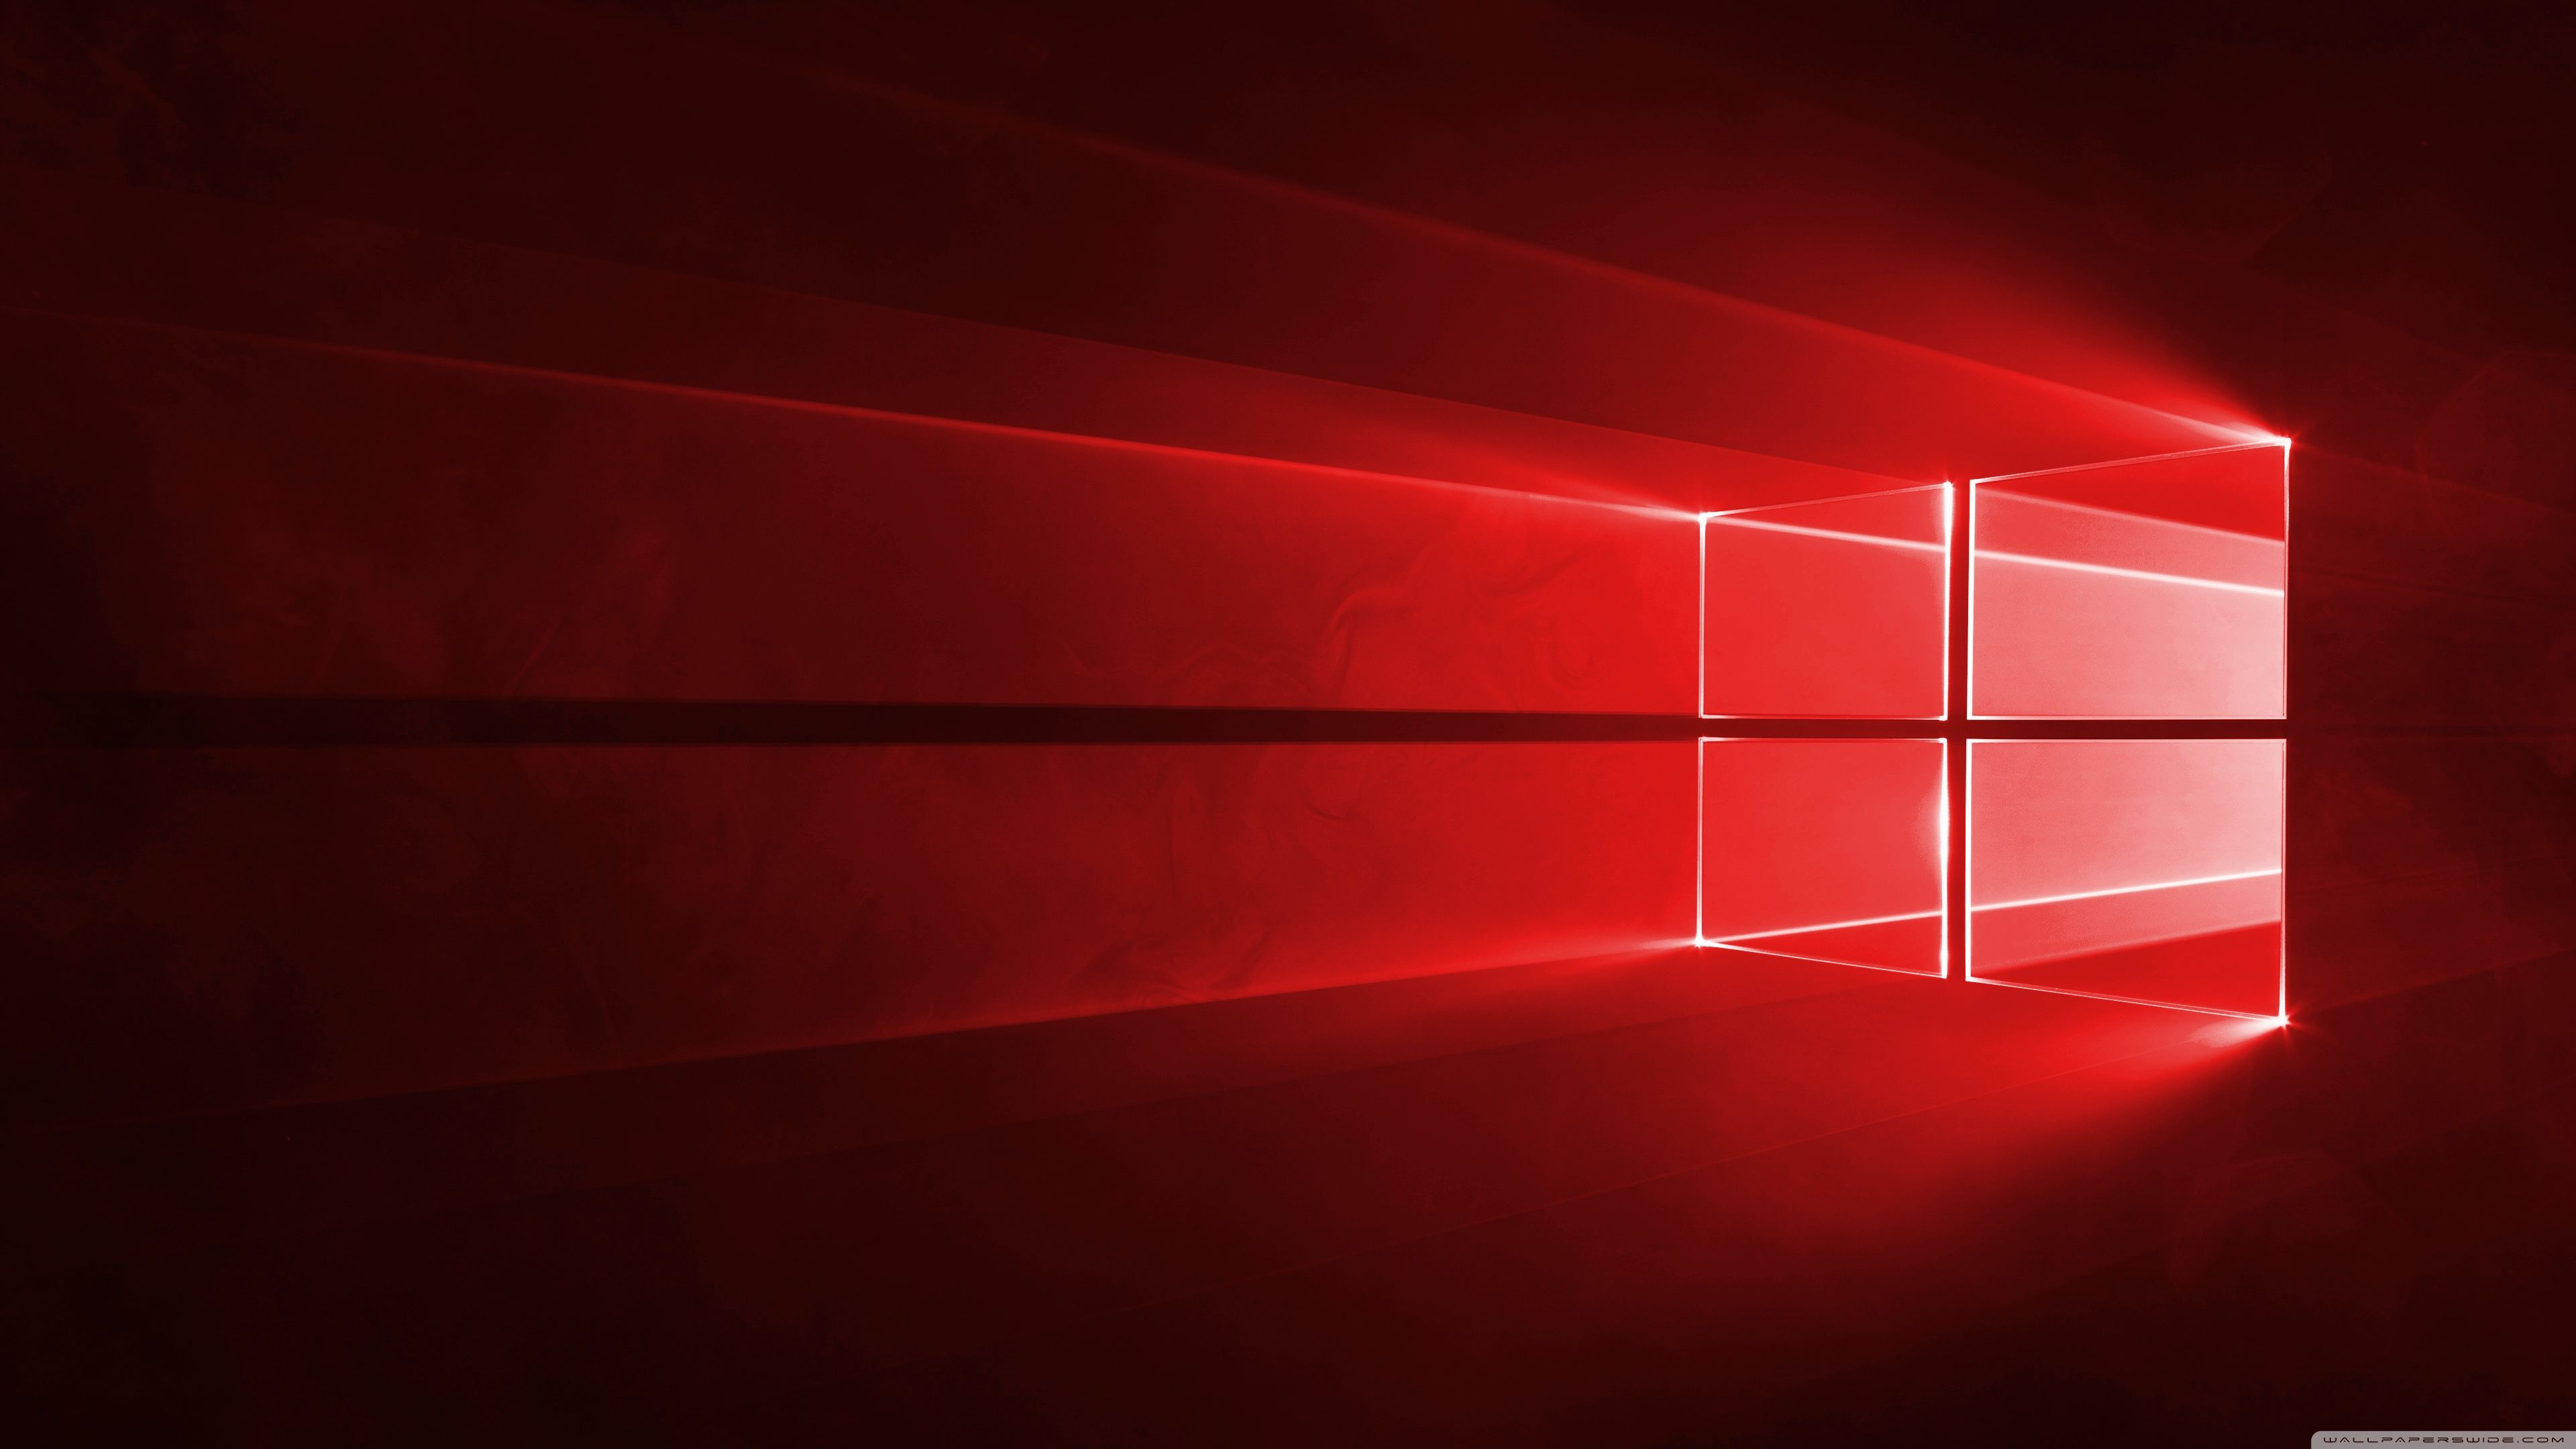 Windows 10 Red en 4K ❤ 4K HD fondo de escritorio para • Wide y Ultra